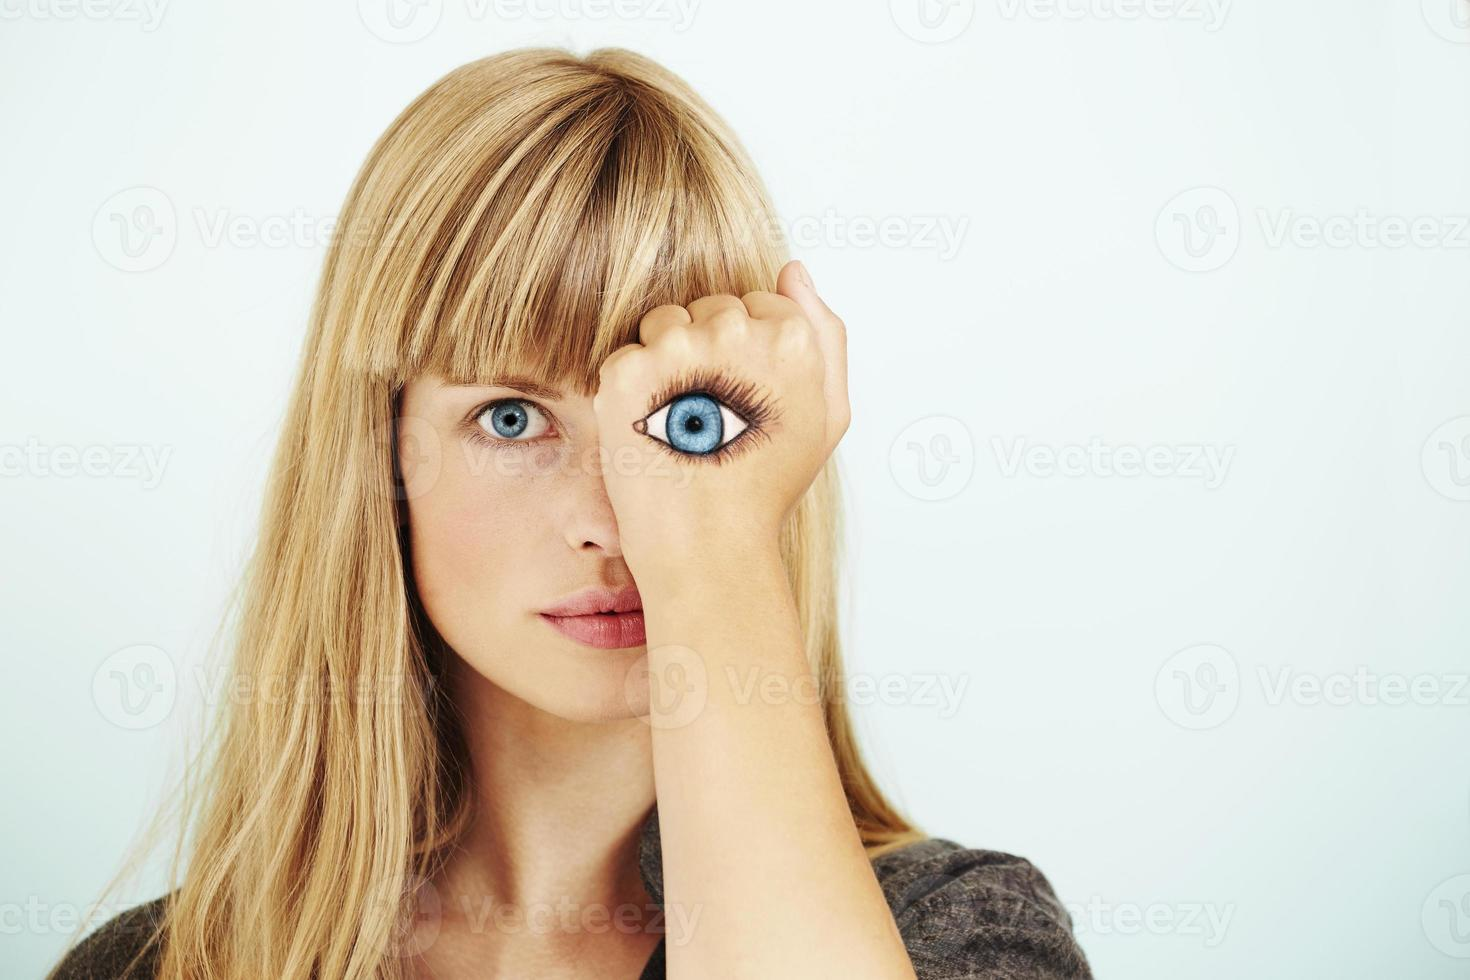 Woman staring with painted eye photo